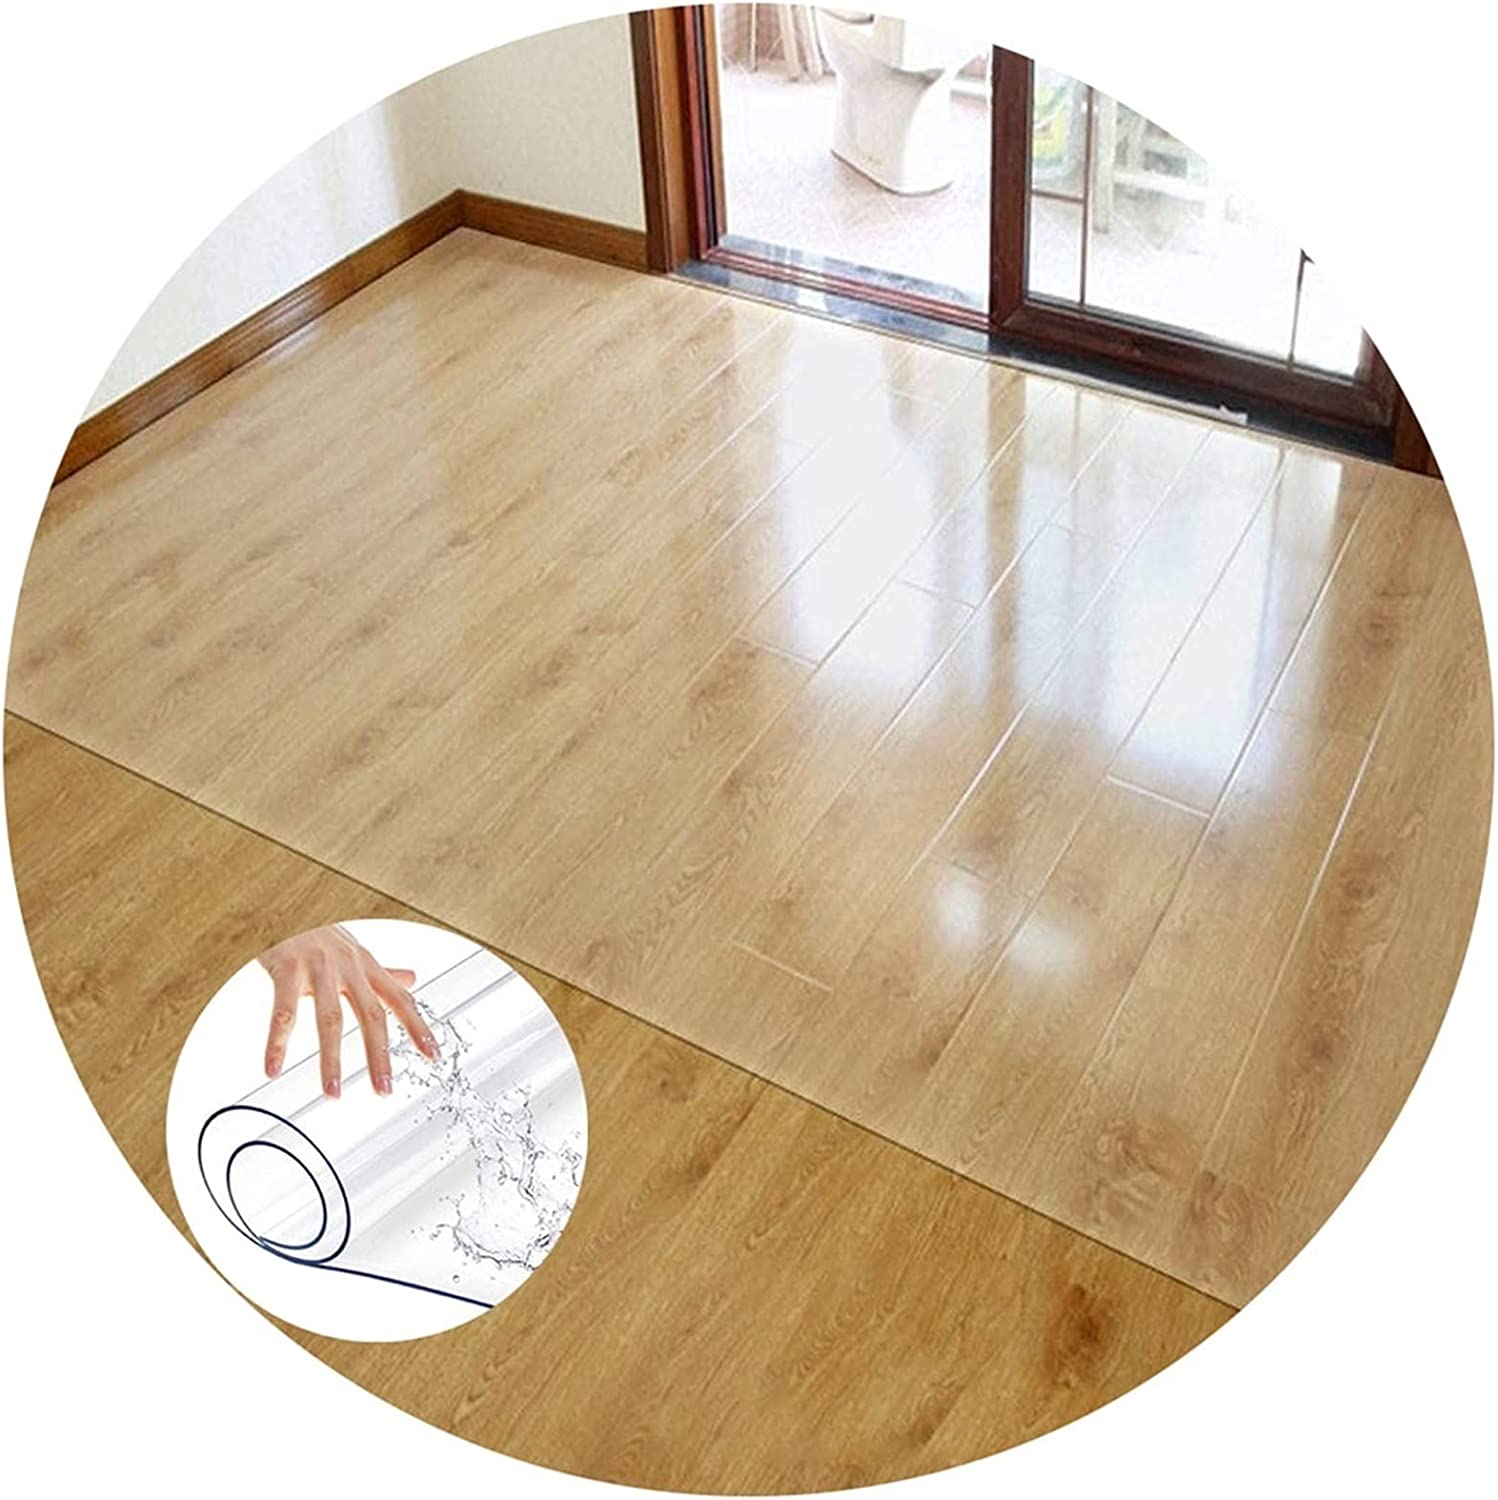 Latest item Clear Floor Mat New product type Scratch Resistant Anti Slip Plastic Chair